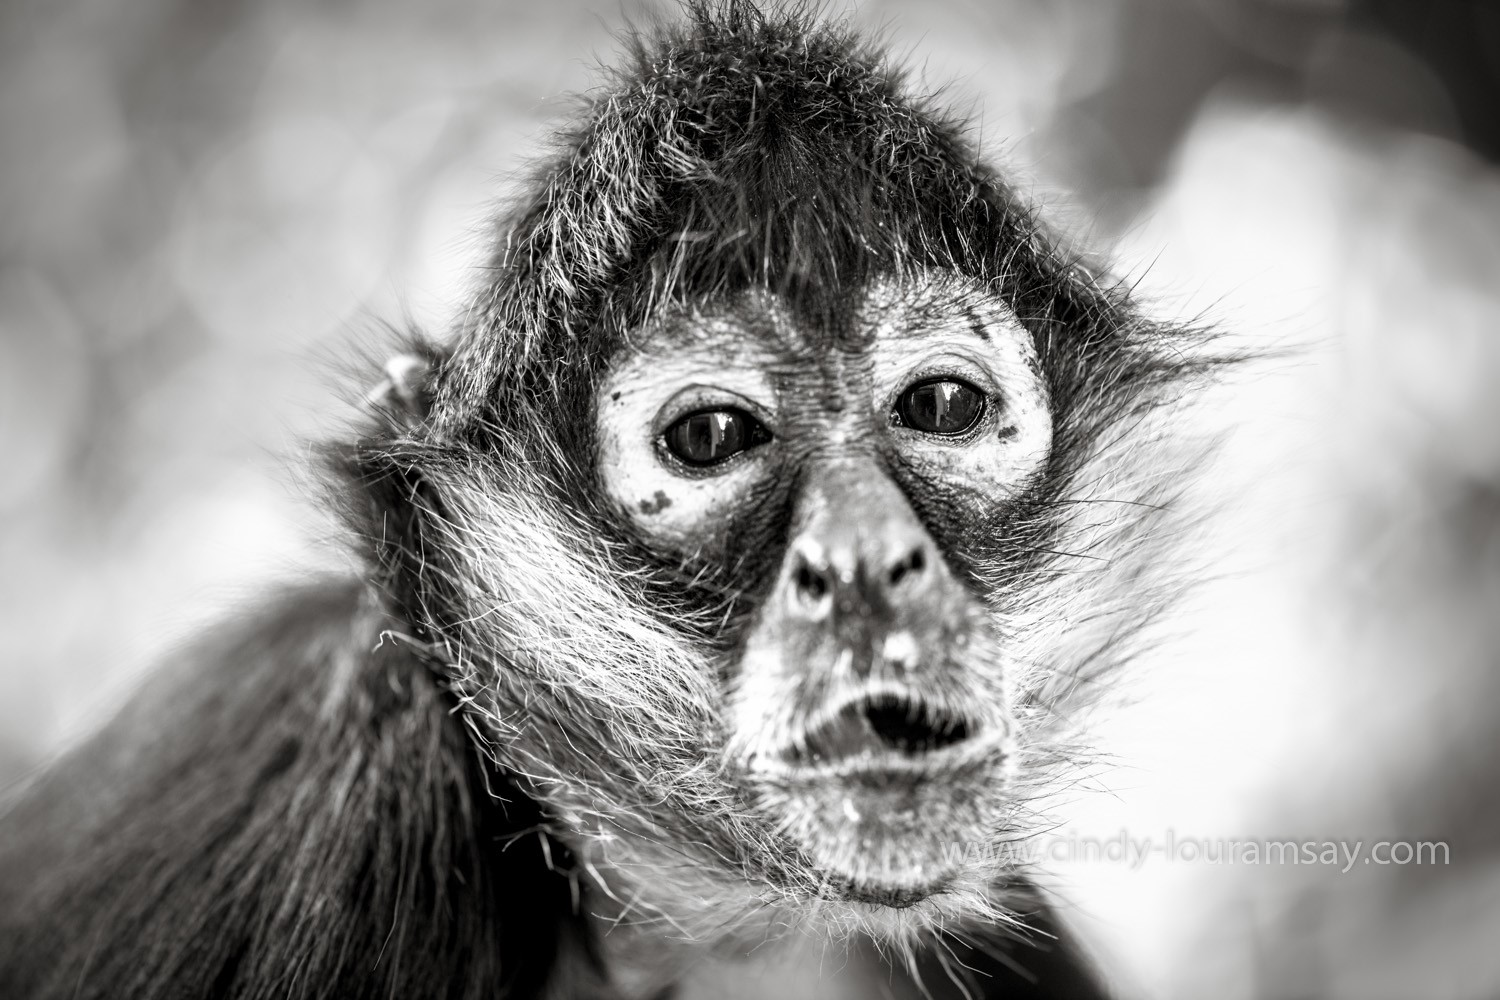 Cindy Lou Ramsay B&W Spider Monkey close up Mexico